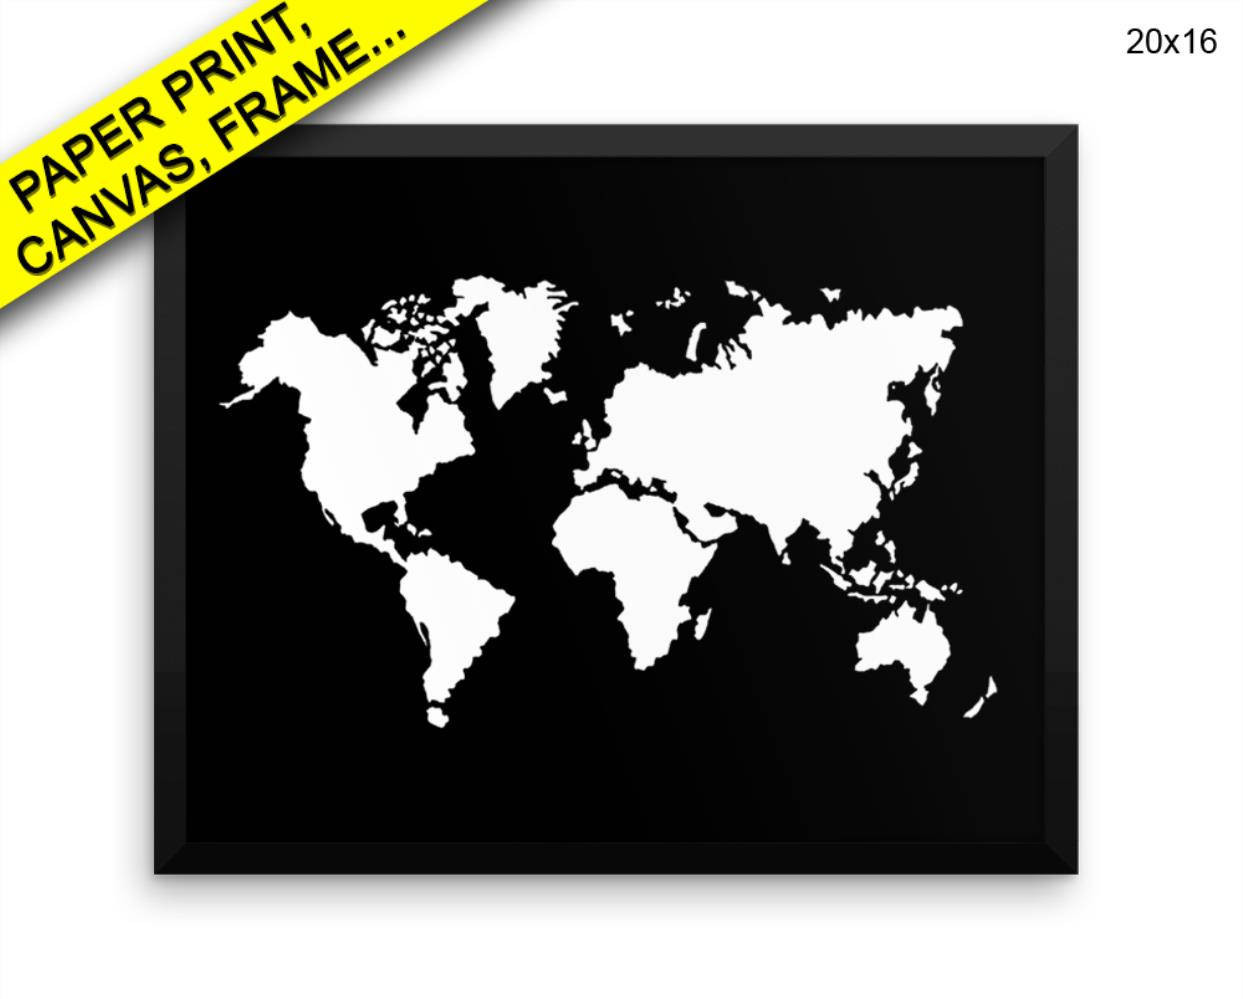 Printable 8x11 Map Of the United States Luxury World Map Printed Poster World Map Framed World Map Home Art